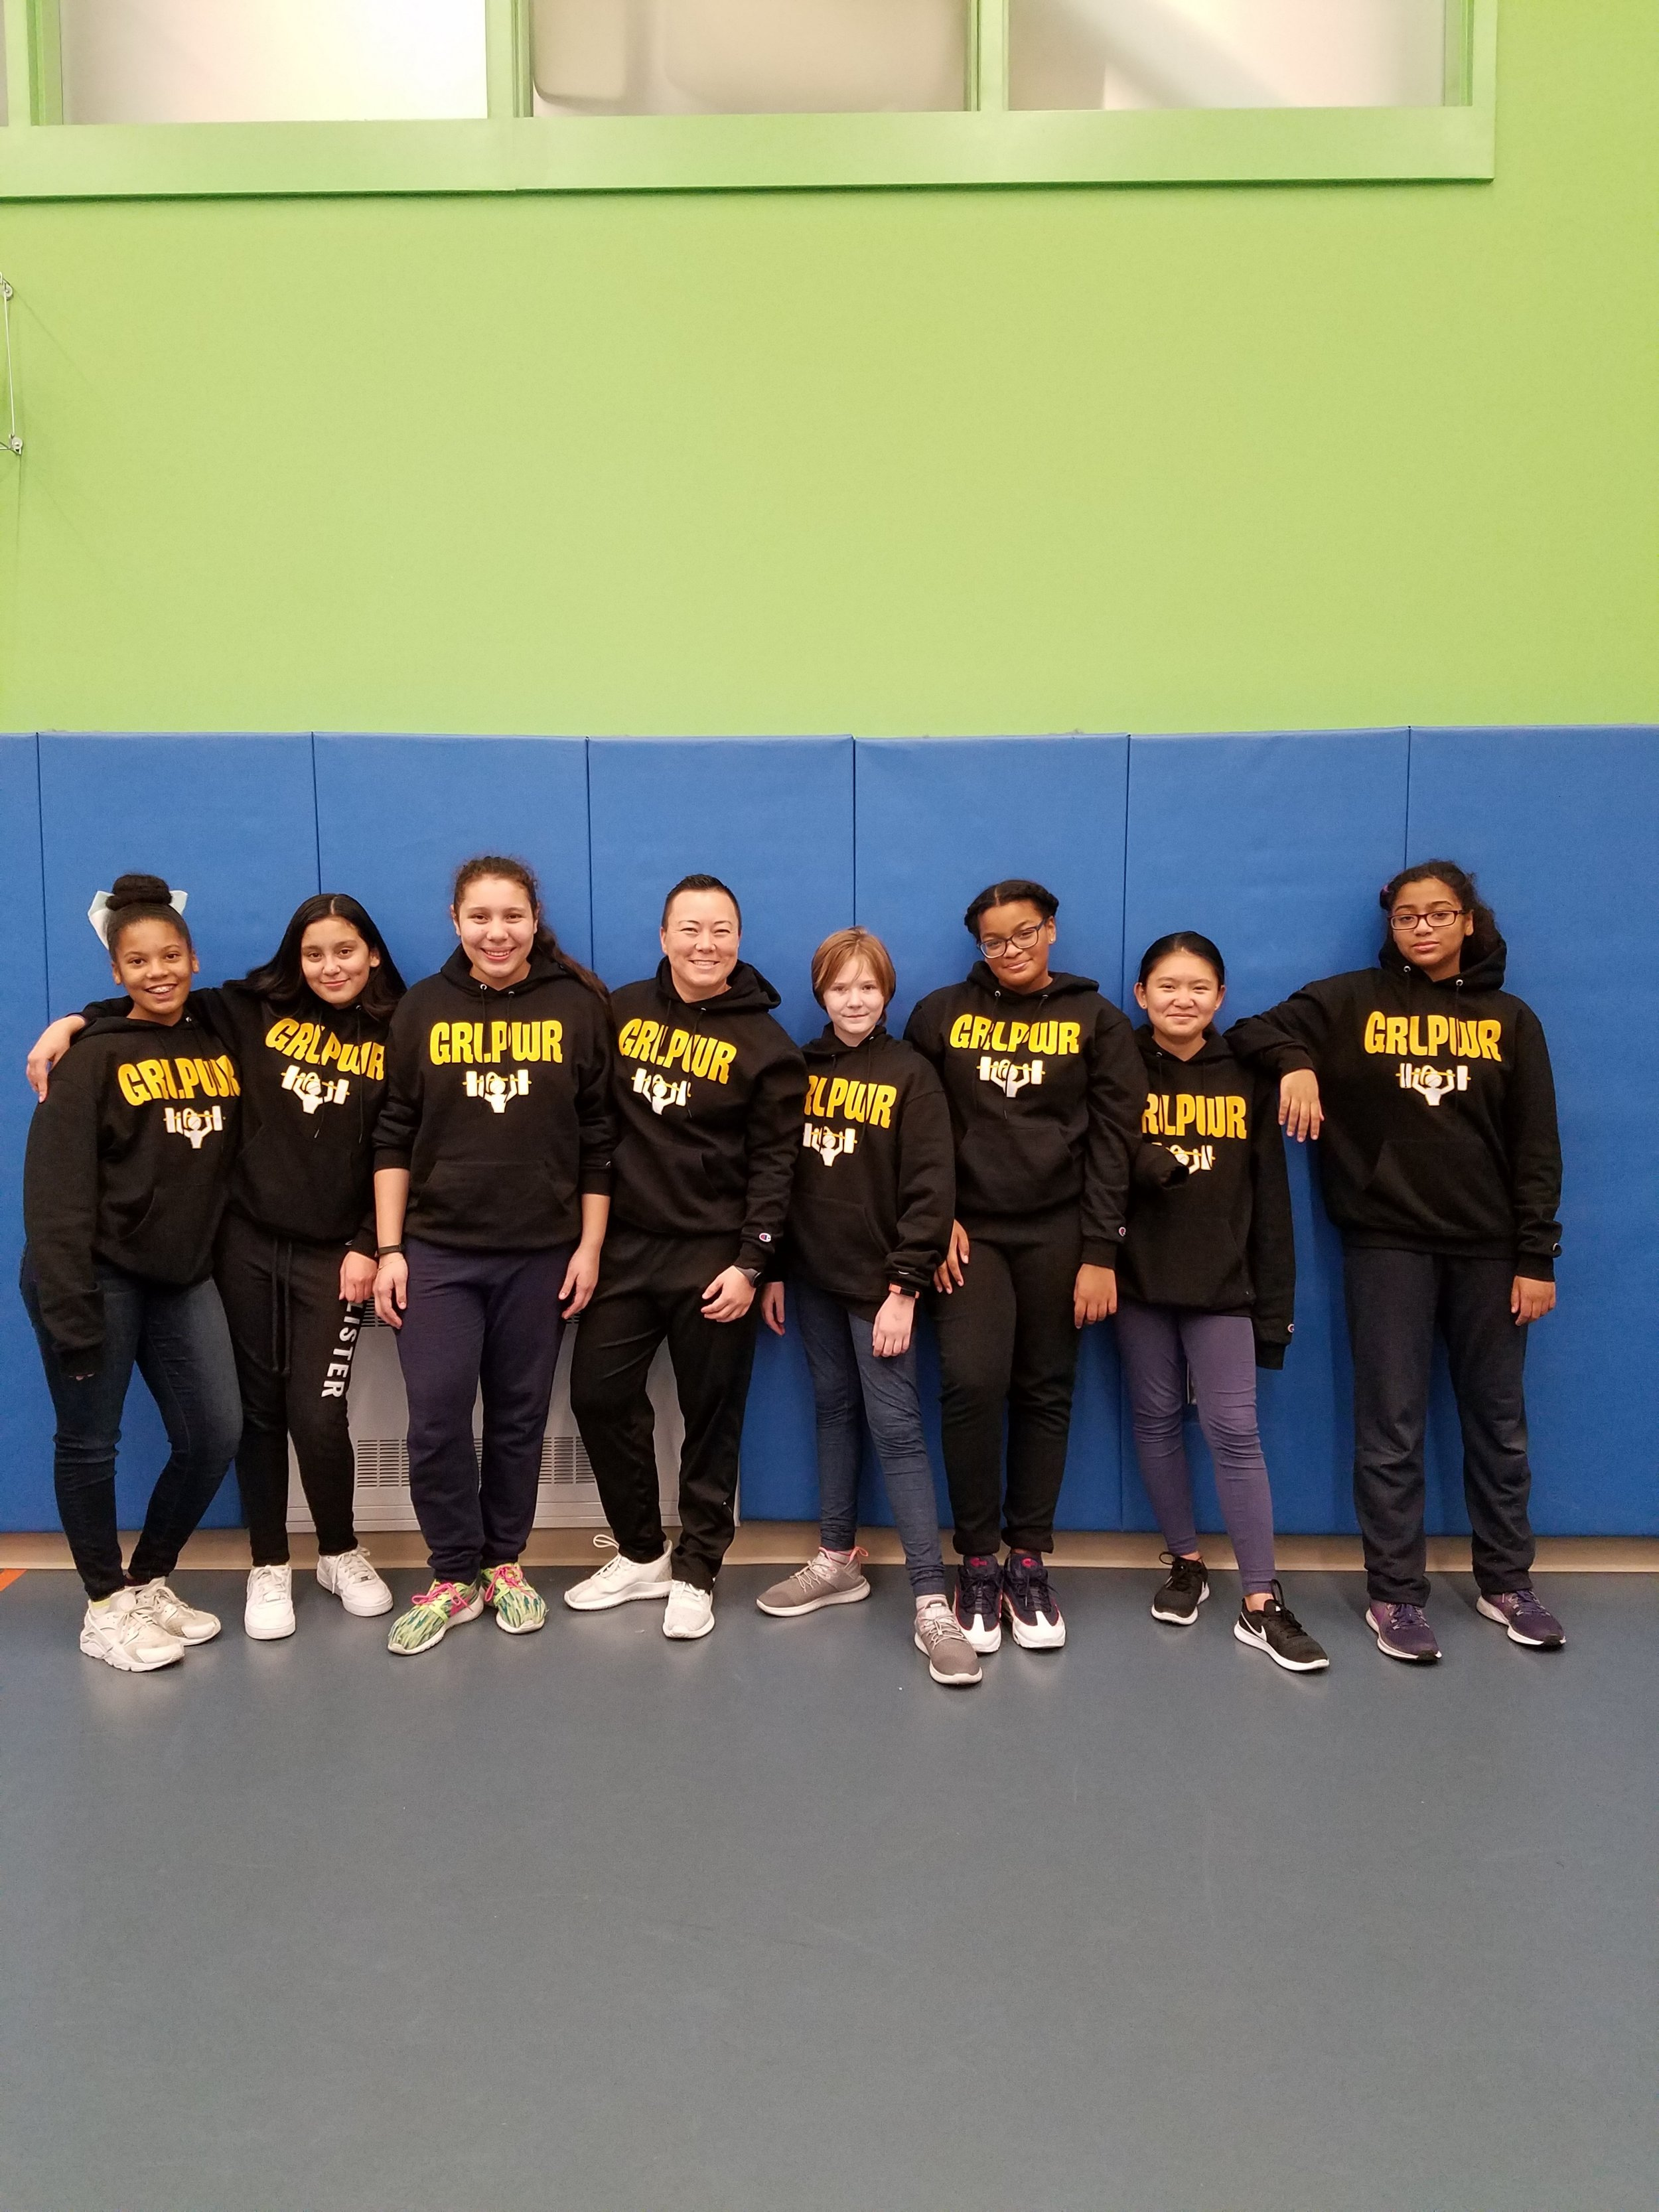 Students in Ms. Powell's GRL PWR after school group build friendships and confidence as they begin to navigate middle school.